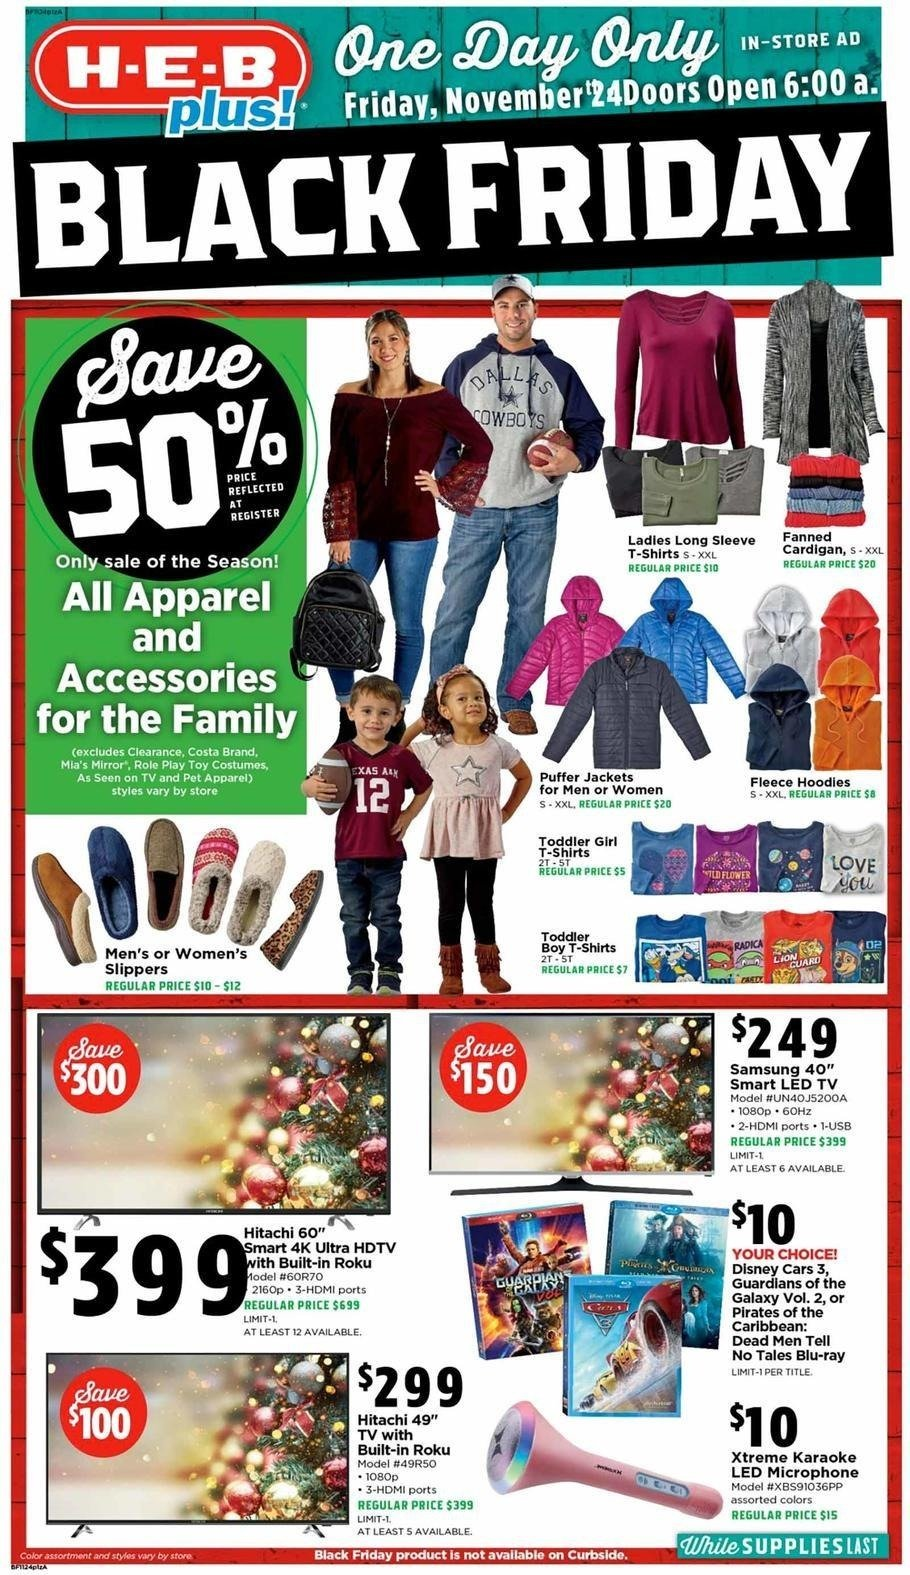 H-E-B Plus 2017 Black Friday Ad Page 1